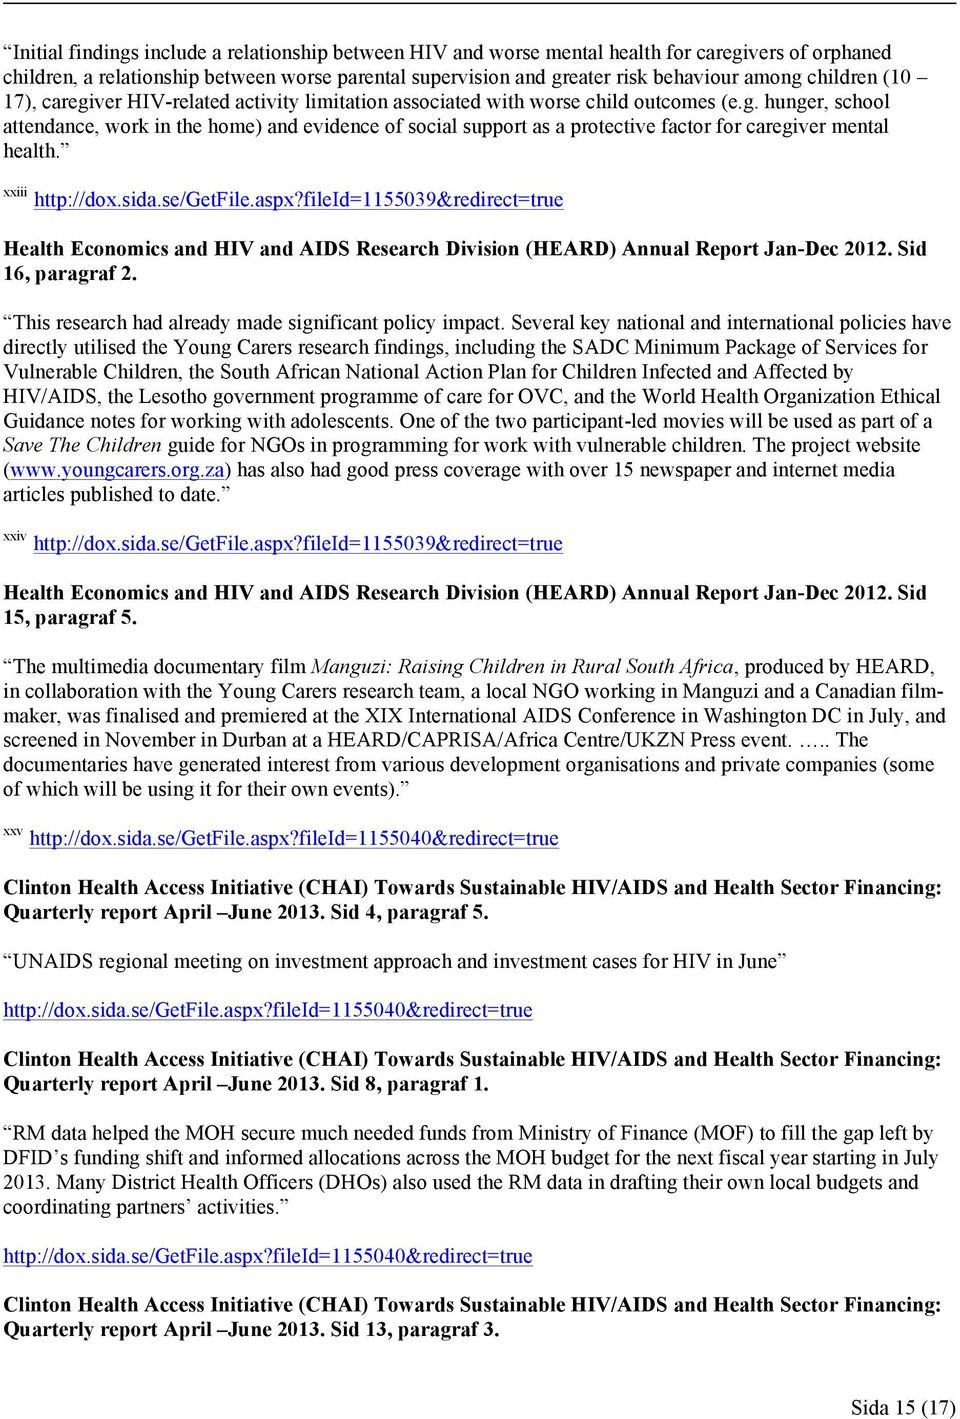 xxiii http://dox.sida.se/getfile.aspx?fileid=1155039&redirect=true Health Economics and HIV and AIDS Research Division (HEARD) Annual Report Jan-Dec 2012. Sid 16, paragraf 2.